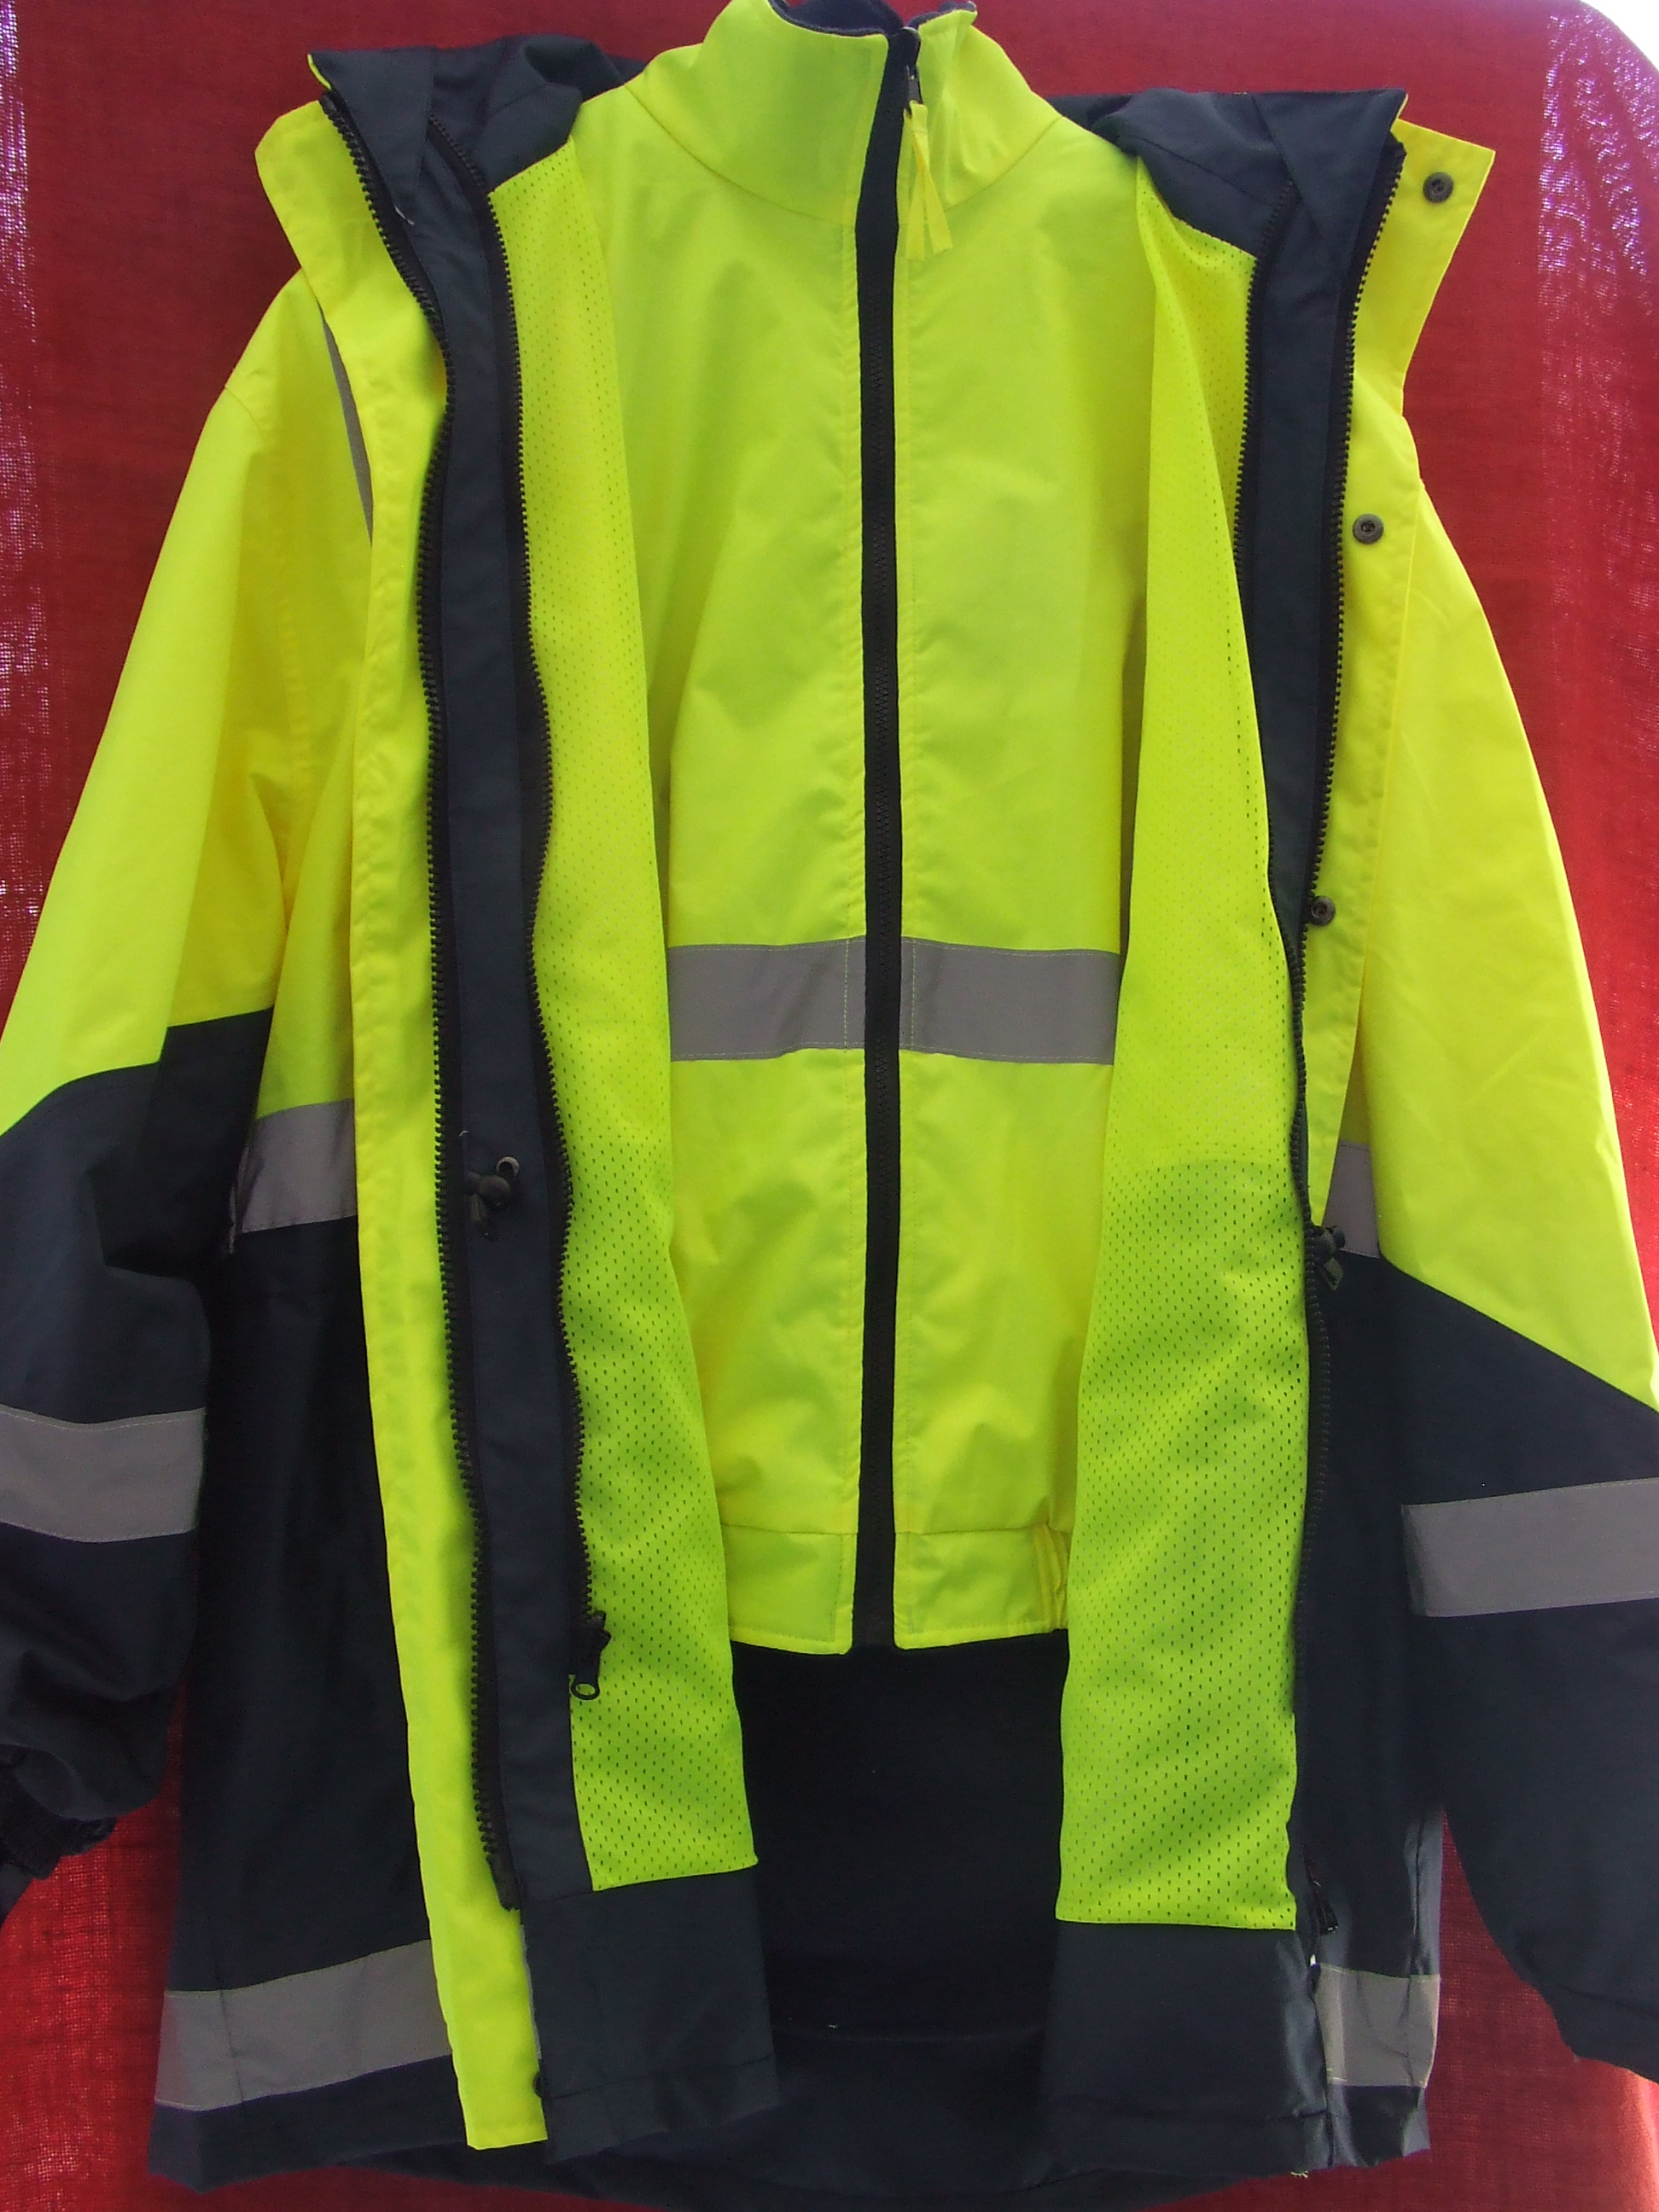 4 in 1 Jacket, High vis. Detachable reversible vest plus hood